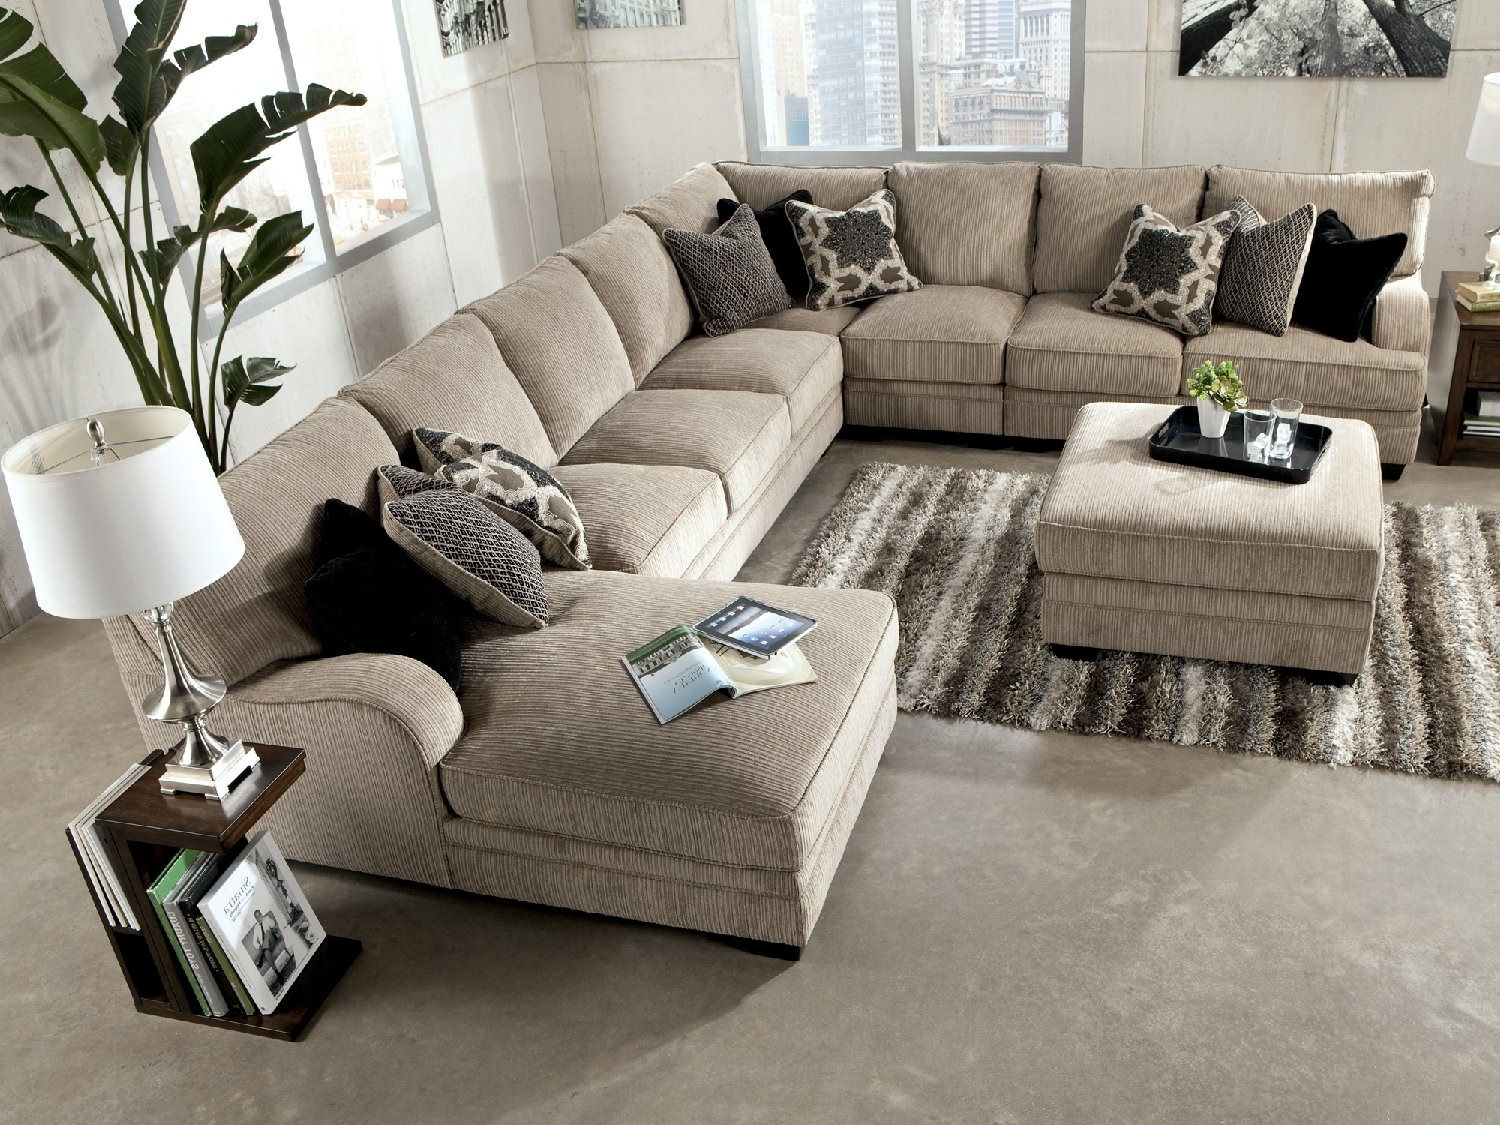 Fancy Sectional Sofas Mn 36 On Contemporary Sofa Inspiration With in Mn Sectional Sofas (Image 2 of 10)